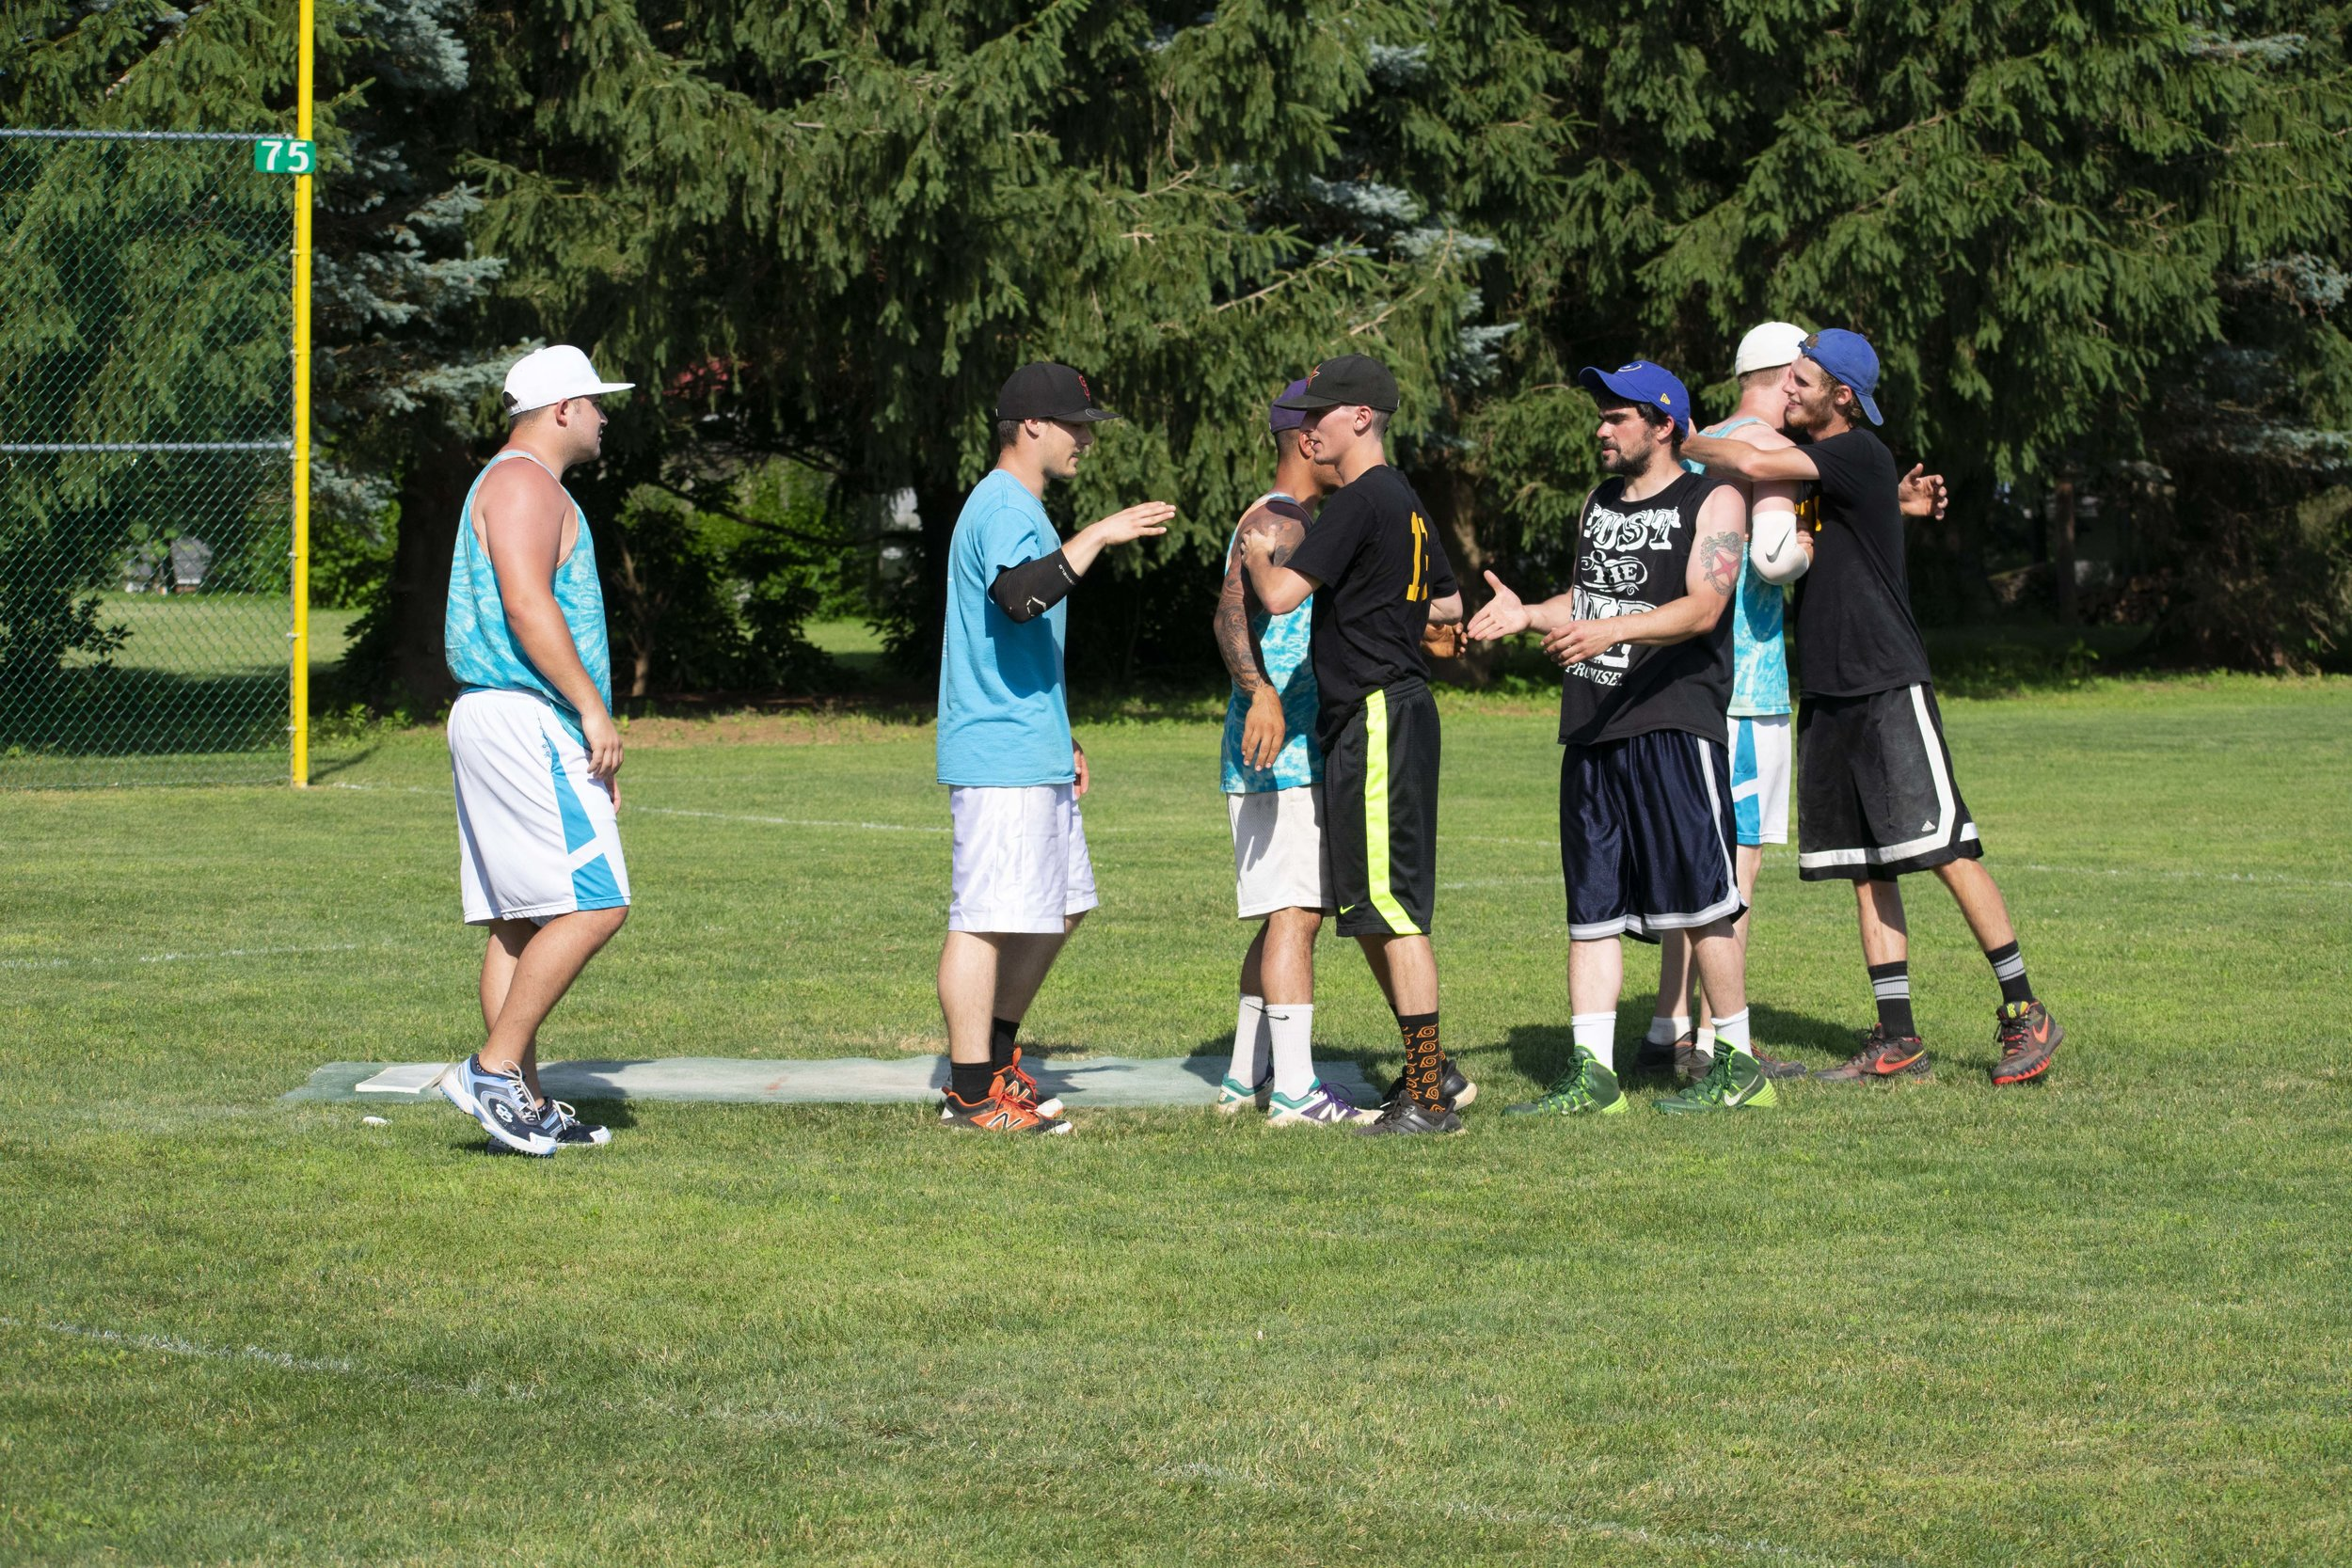 Cloud9 defeated My Name is ERL in 10 innings to win MAW Wiffle Wars. (June 16, 2018)